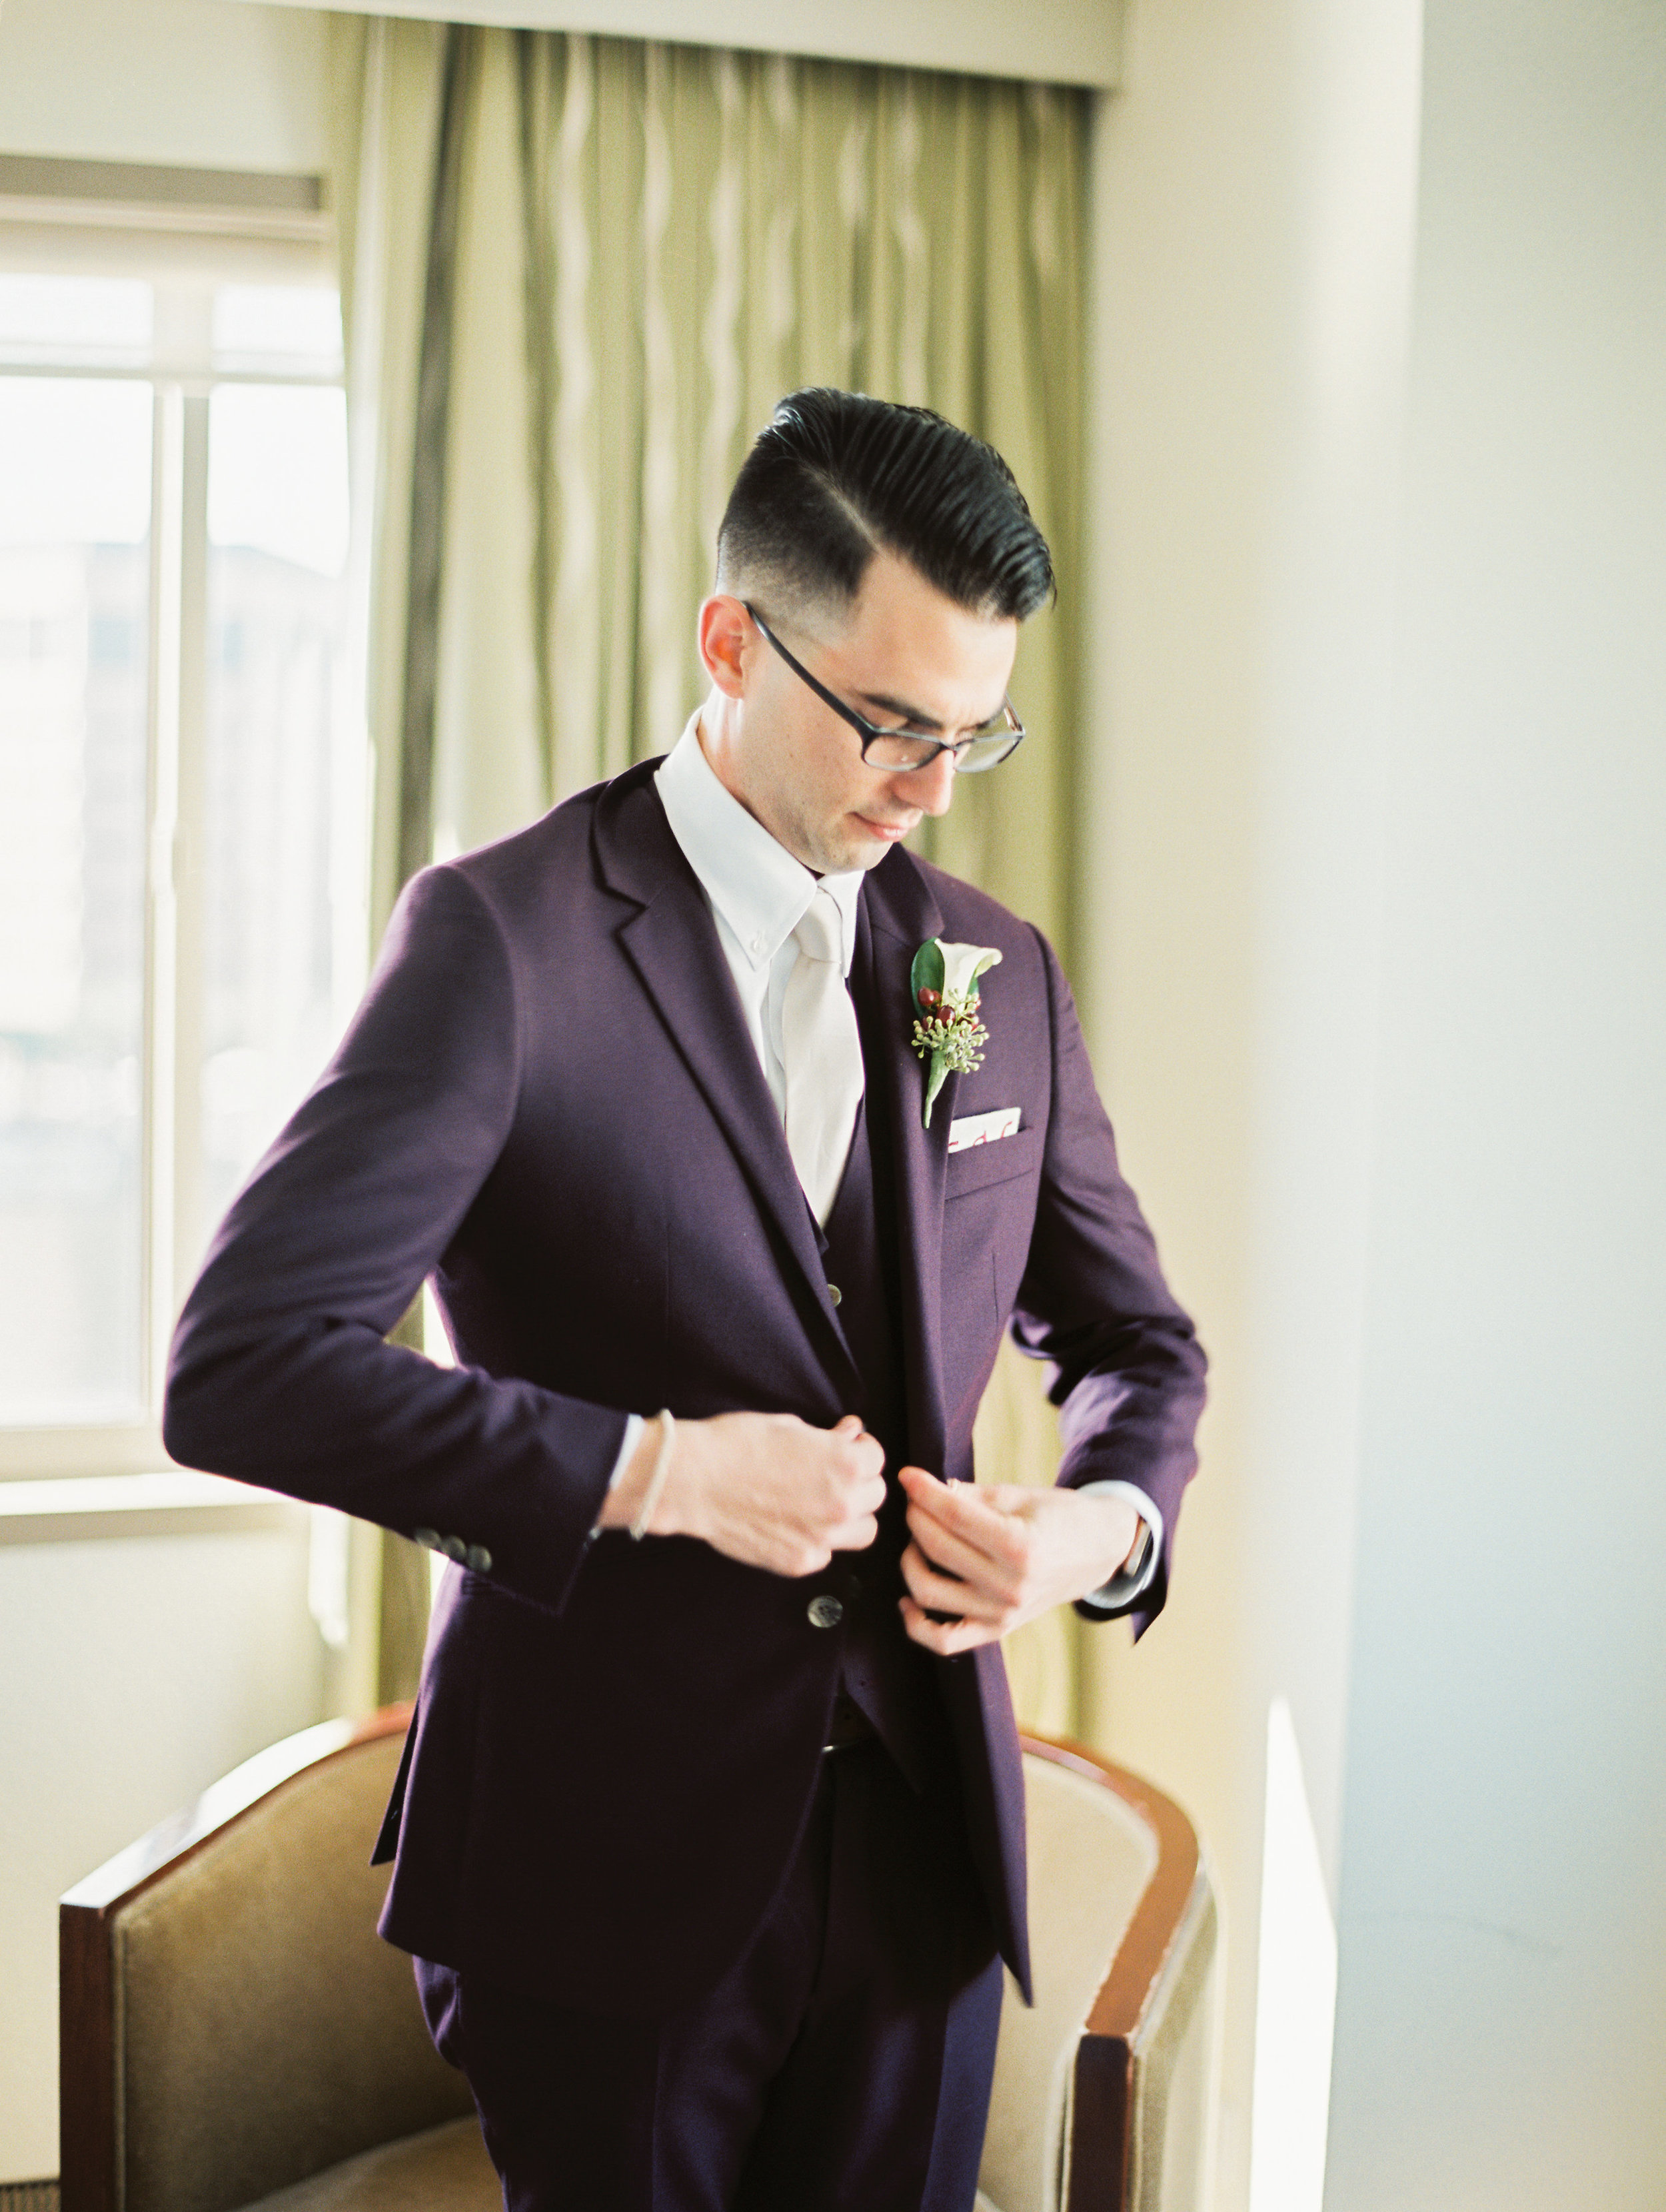 The groom looked dapper in his marsala suit and ivory tie.